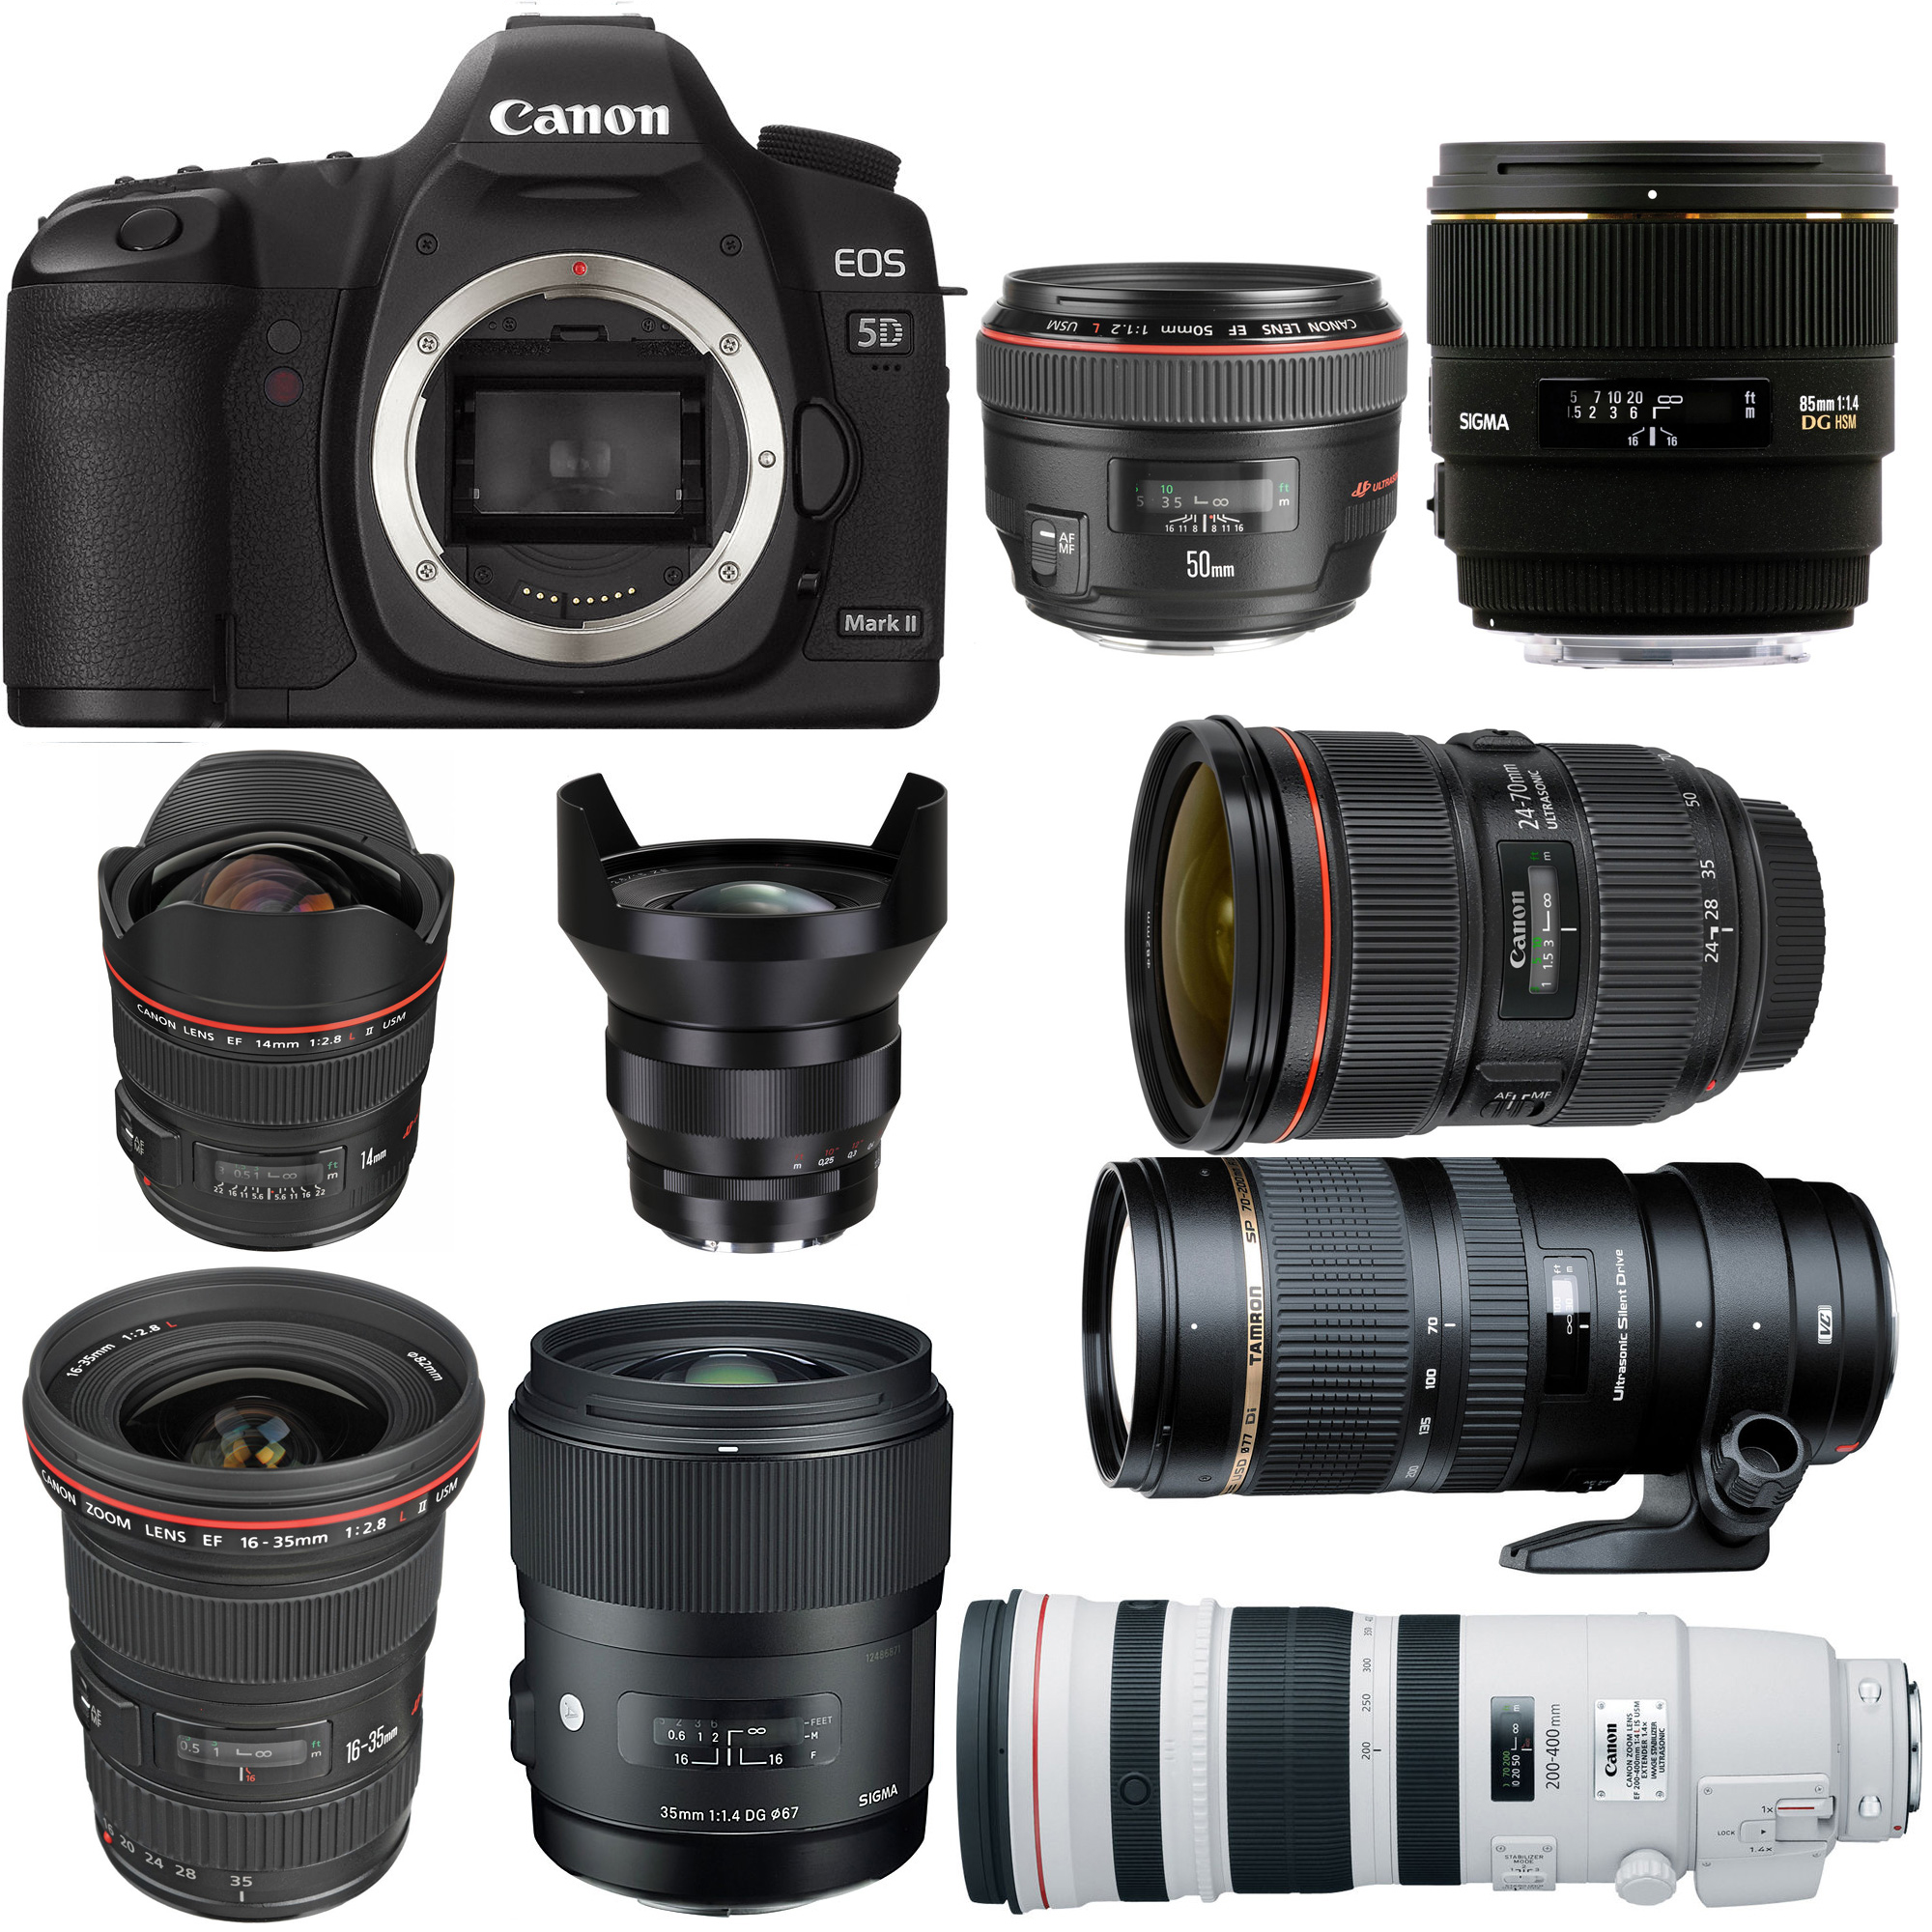 Best Lenses For Canon EOS 5D Mark II